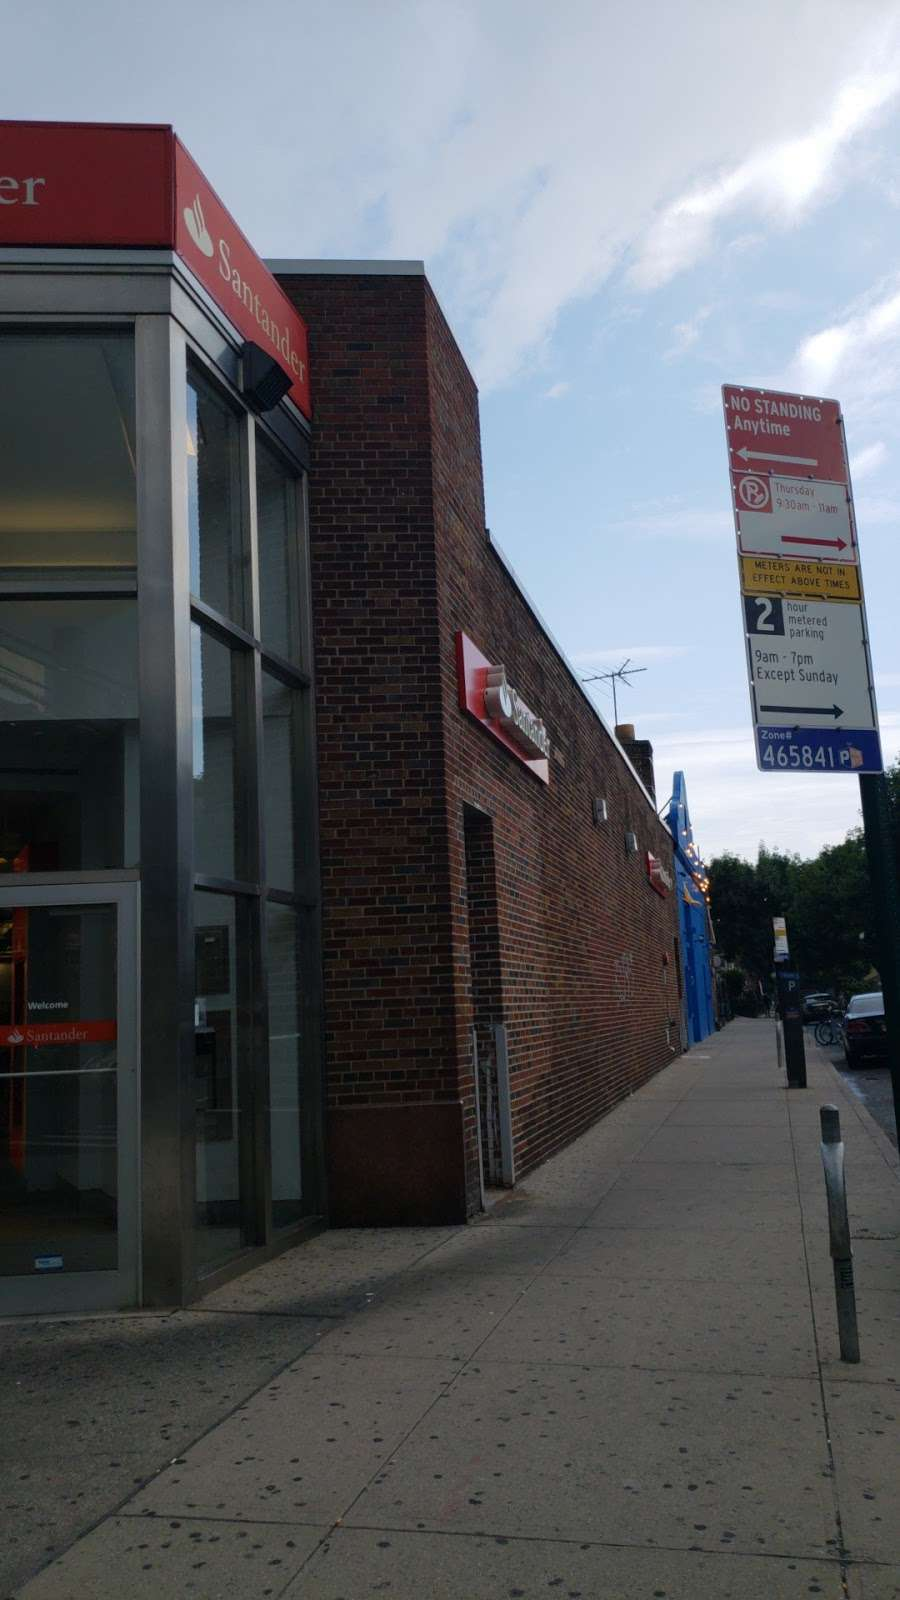 Santander Bank - bank  | Photo 3 of 4 | Address: 83-20 Roosevelt Ave, Jackson Heights, NY 11372, USA | Phone: (718) 457-9800